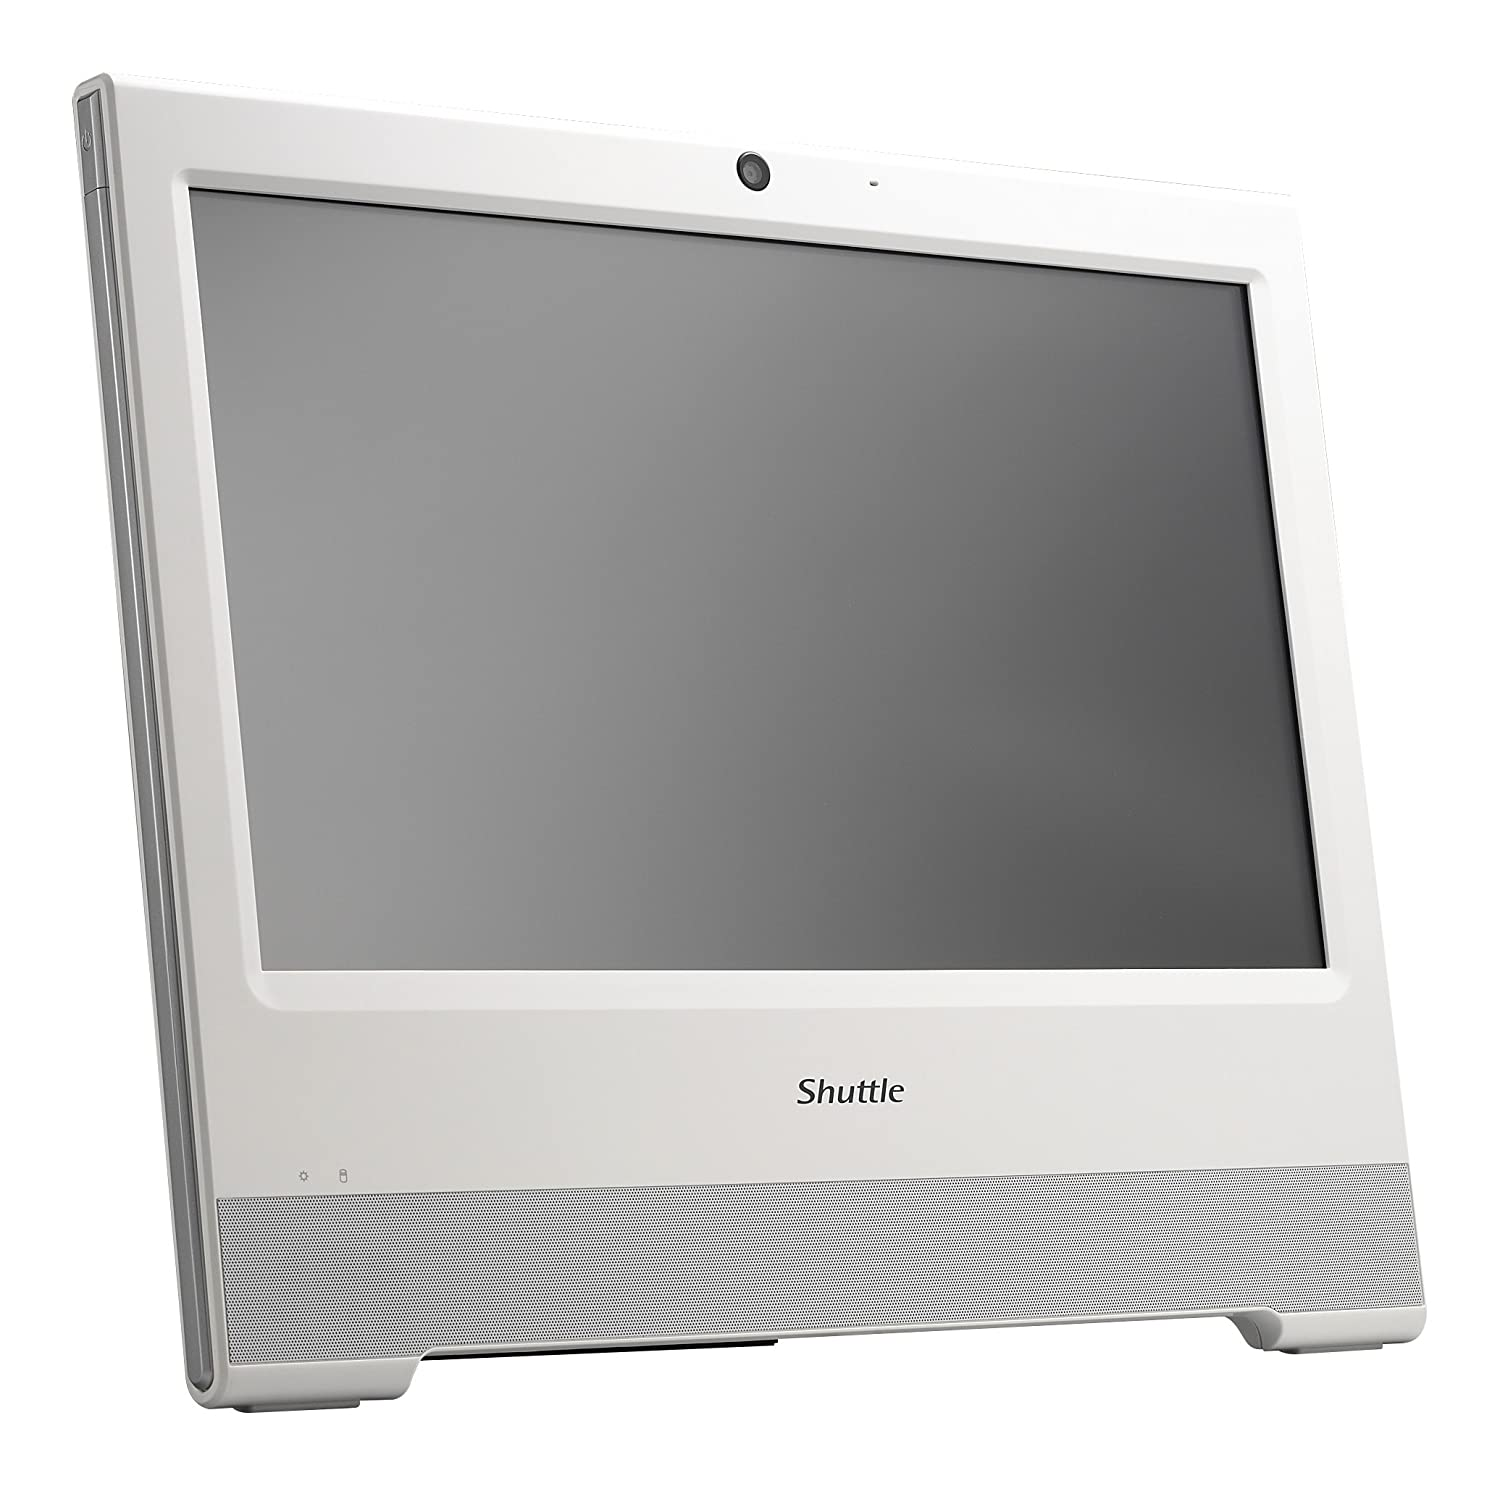 Shuttle X50V6U3 All-in-One PC (i3-7100U) 2,40 GHz Todo-en-Uno Blanco Intel® SoC BGA 1356 - Barebón (7ª generación de procesadores Intel® Core™ i3, i3-7100U, 2,40 GHz, 14 NM, 15 W, SO-DIMM)